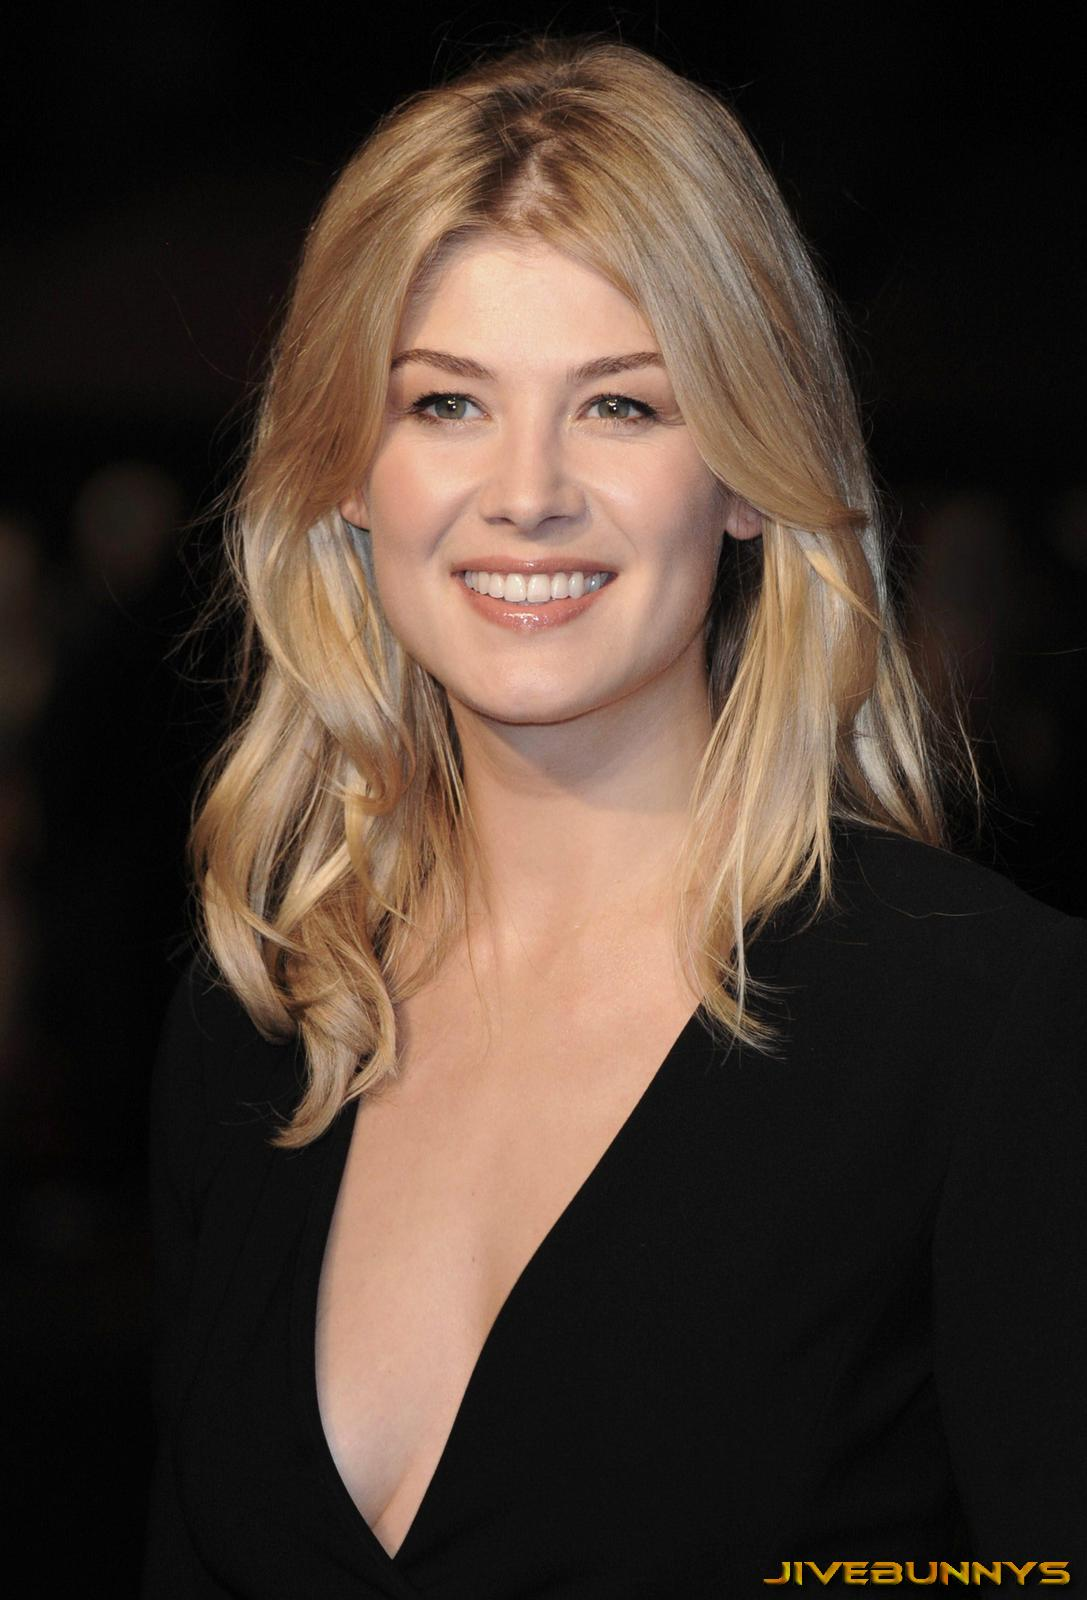 Rosamund pike, Wallpap...